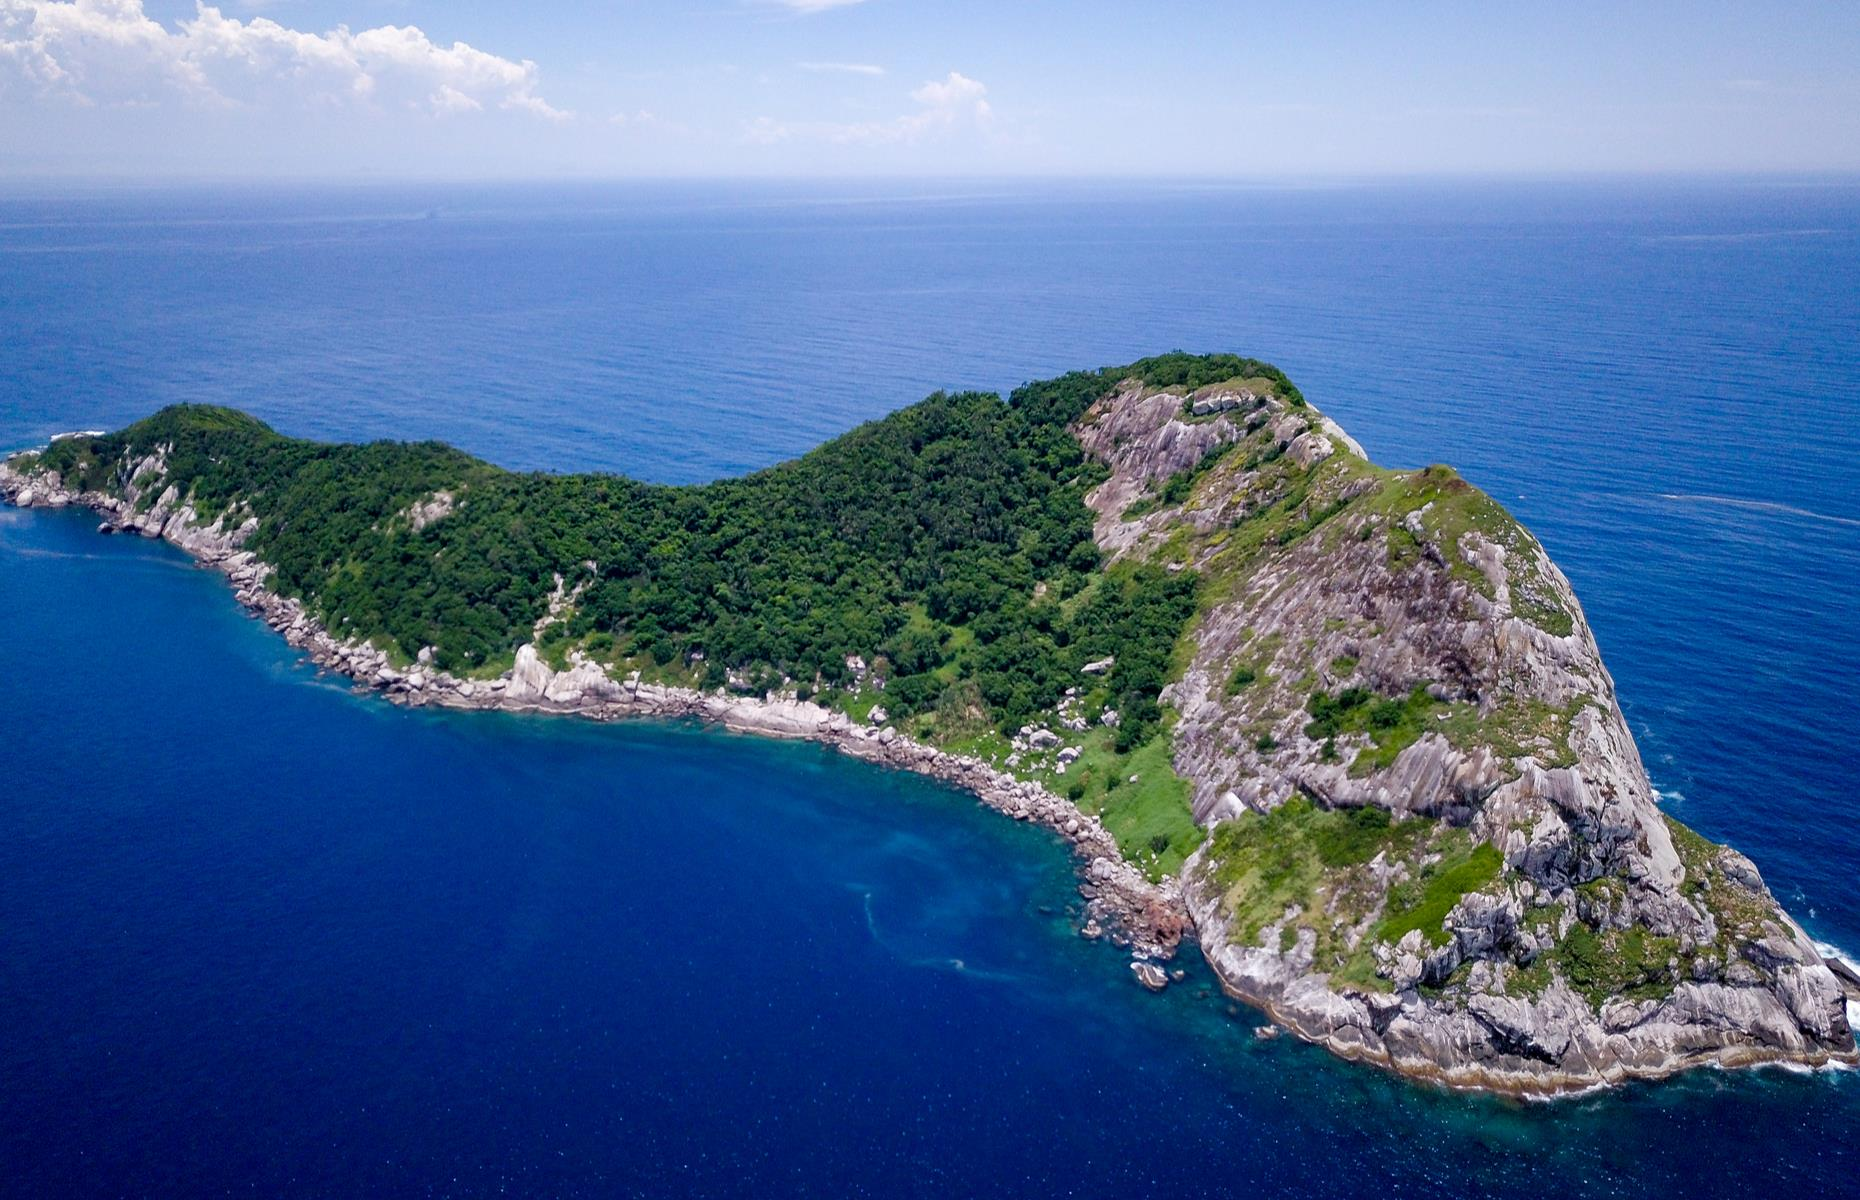 Slide 23 of 51: At first glance, this island off the coast of Brazil seems like the perfect escape with its crystal blue waters, lush vegetation and rocky expanse. However, there is a reason it's a no man's land...